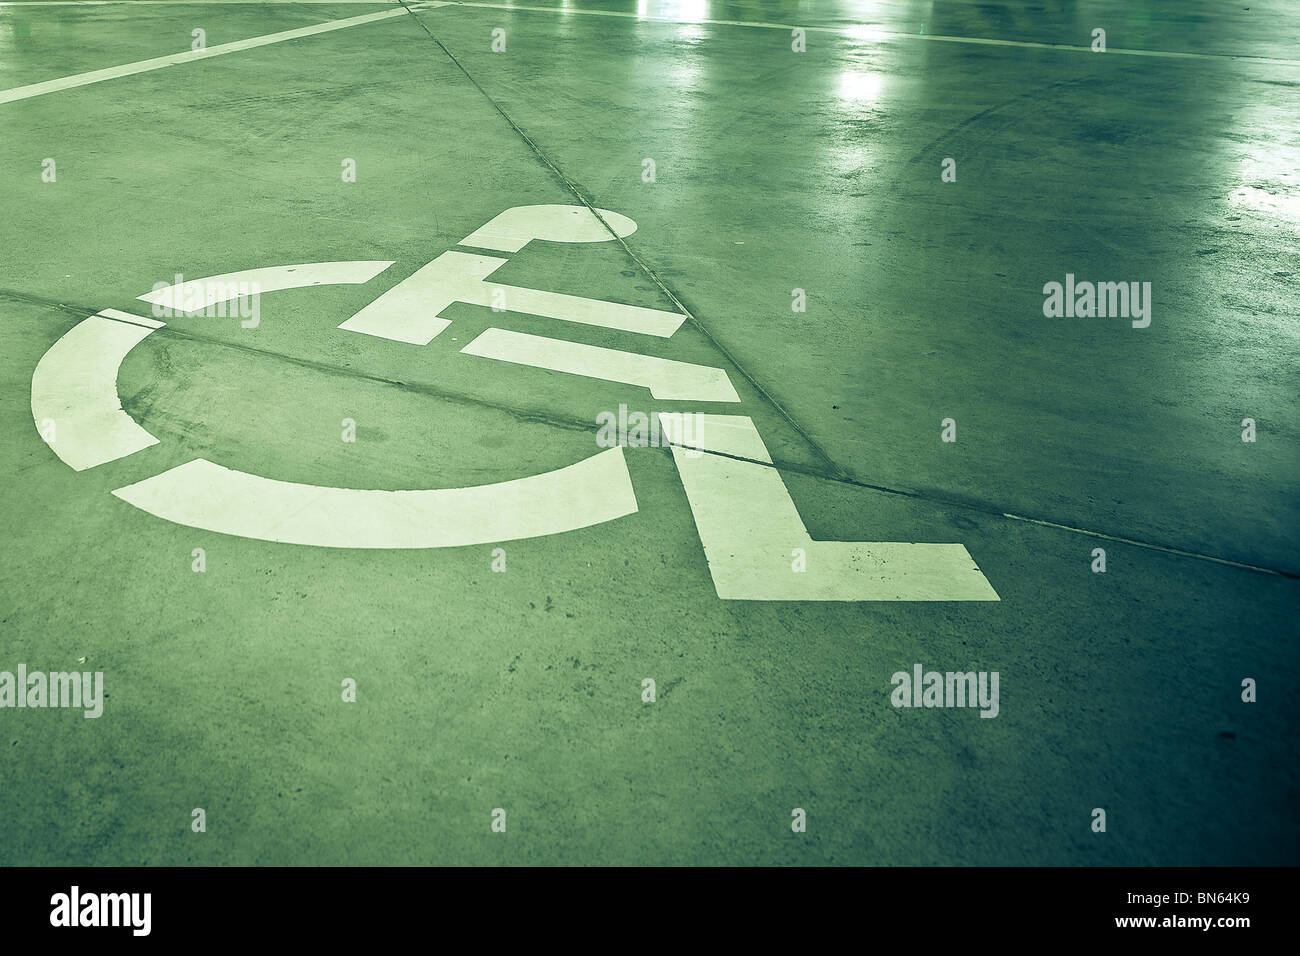 Disability sign on grunge background - Stock Image